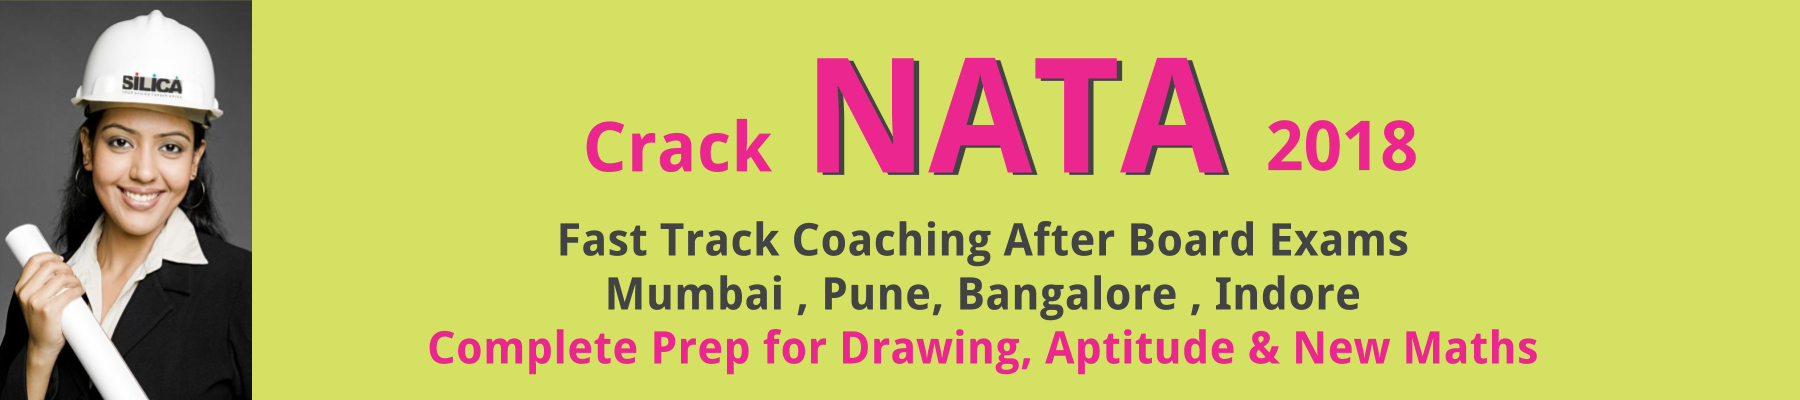 Architecture Drawing Classes In Mumbai nata architecture entrance coaching class in mumbai, pune and